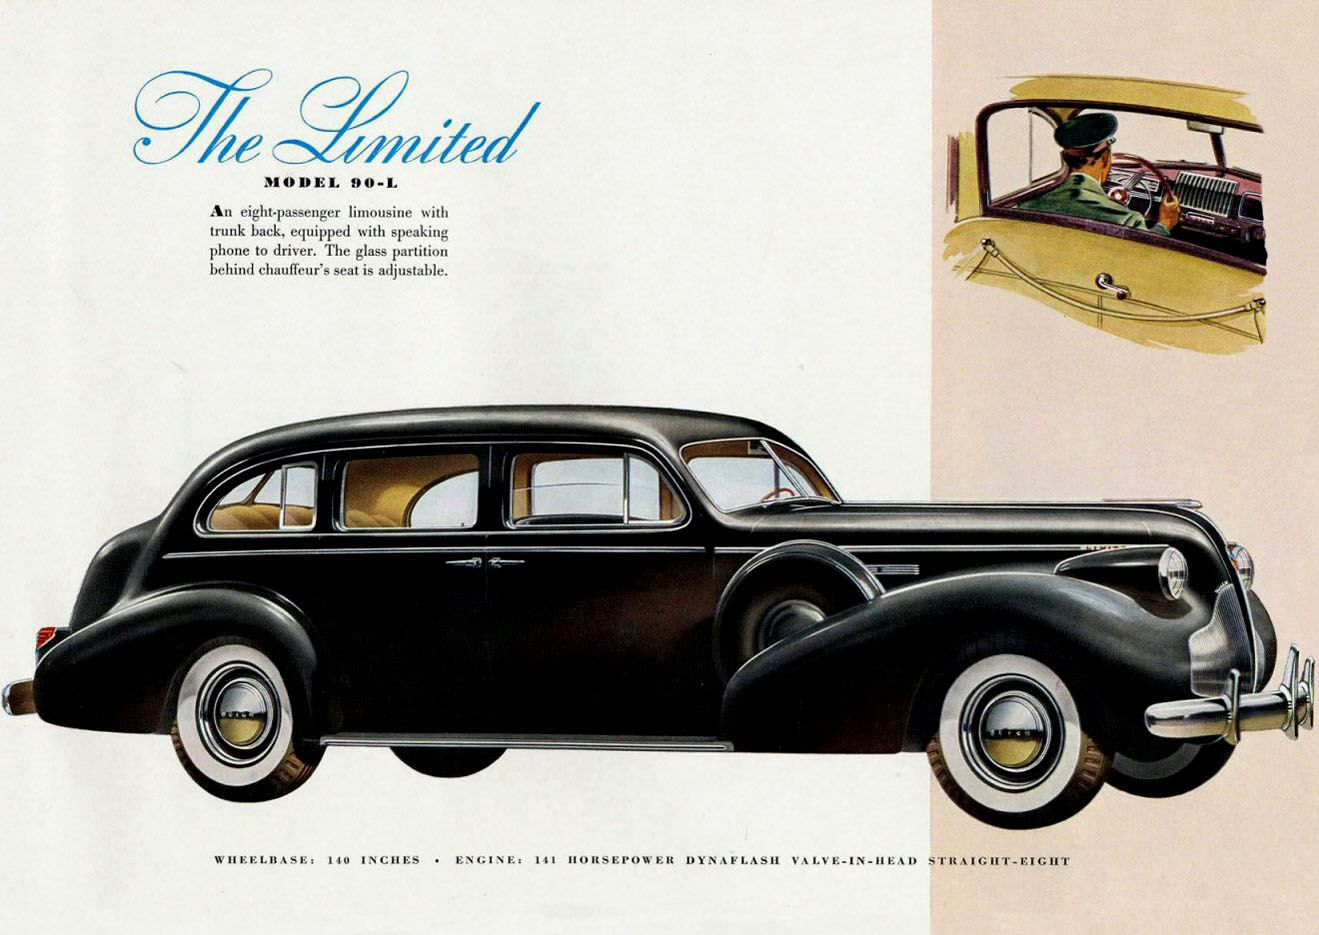 1939 Buick--my dad owned one as a teenager in 1958.